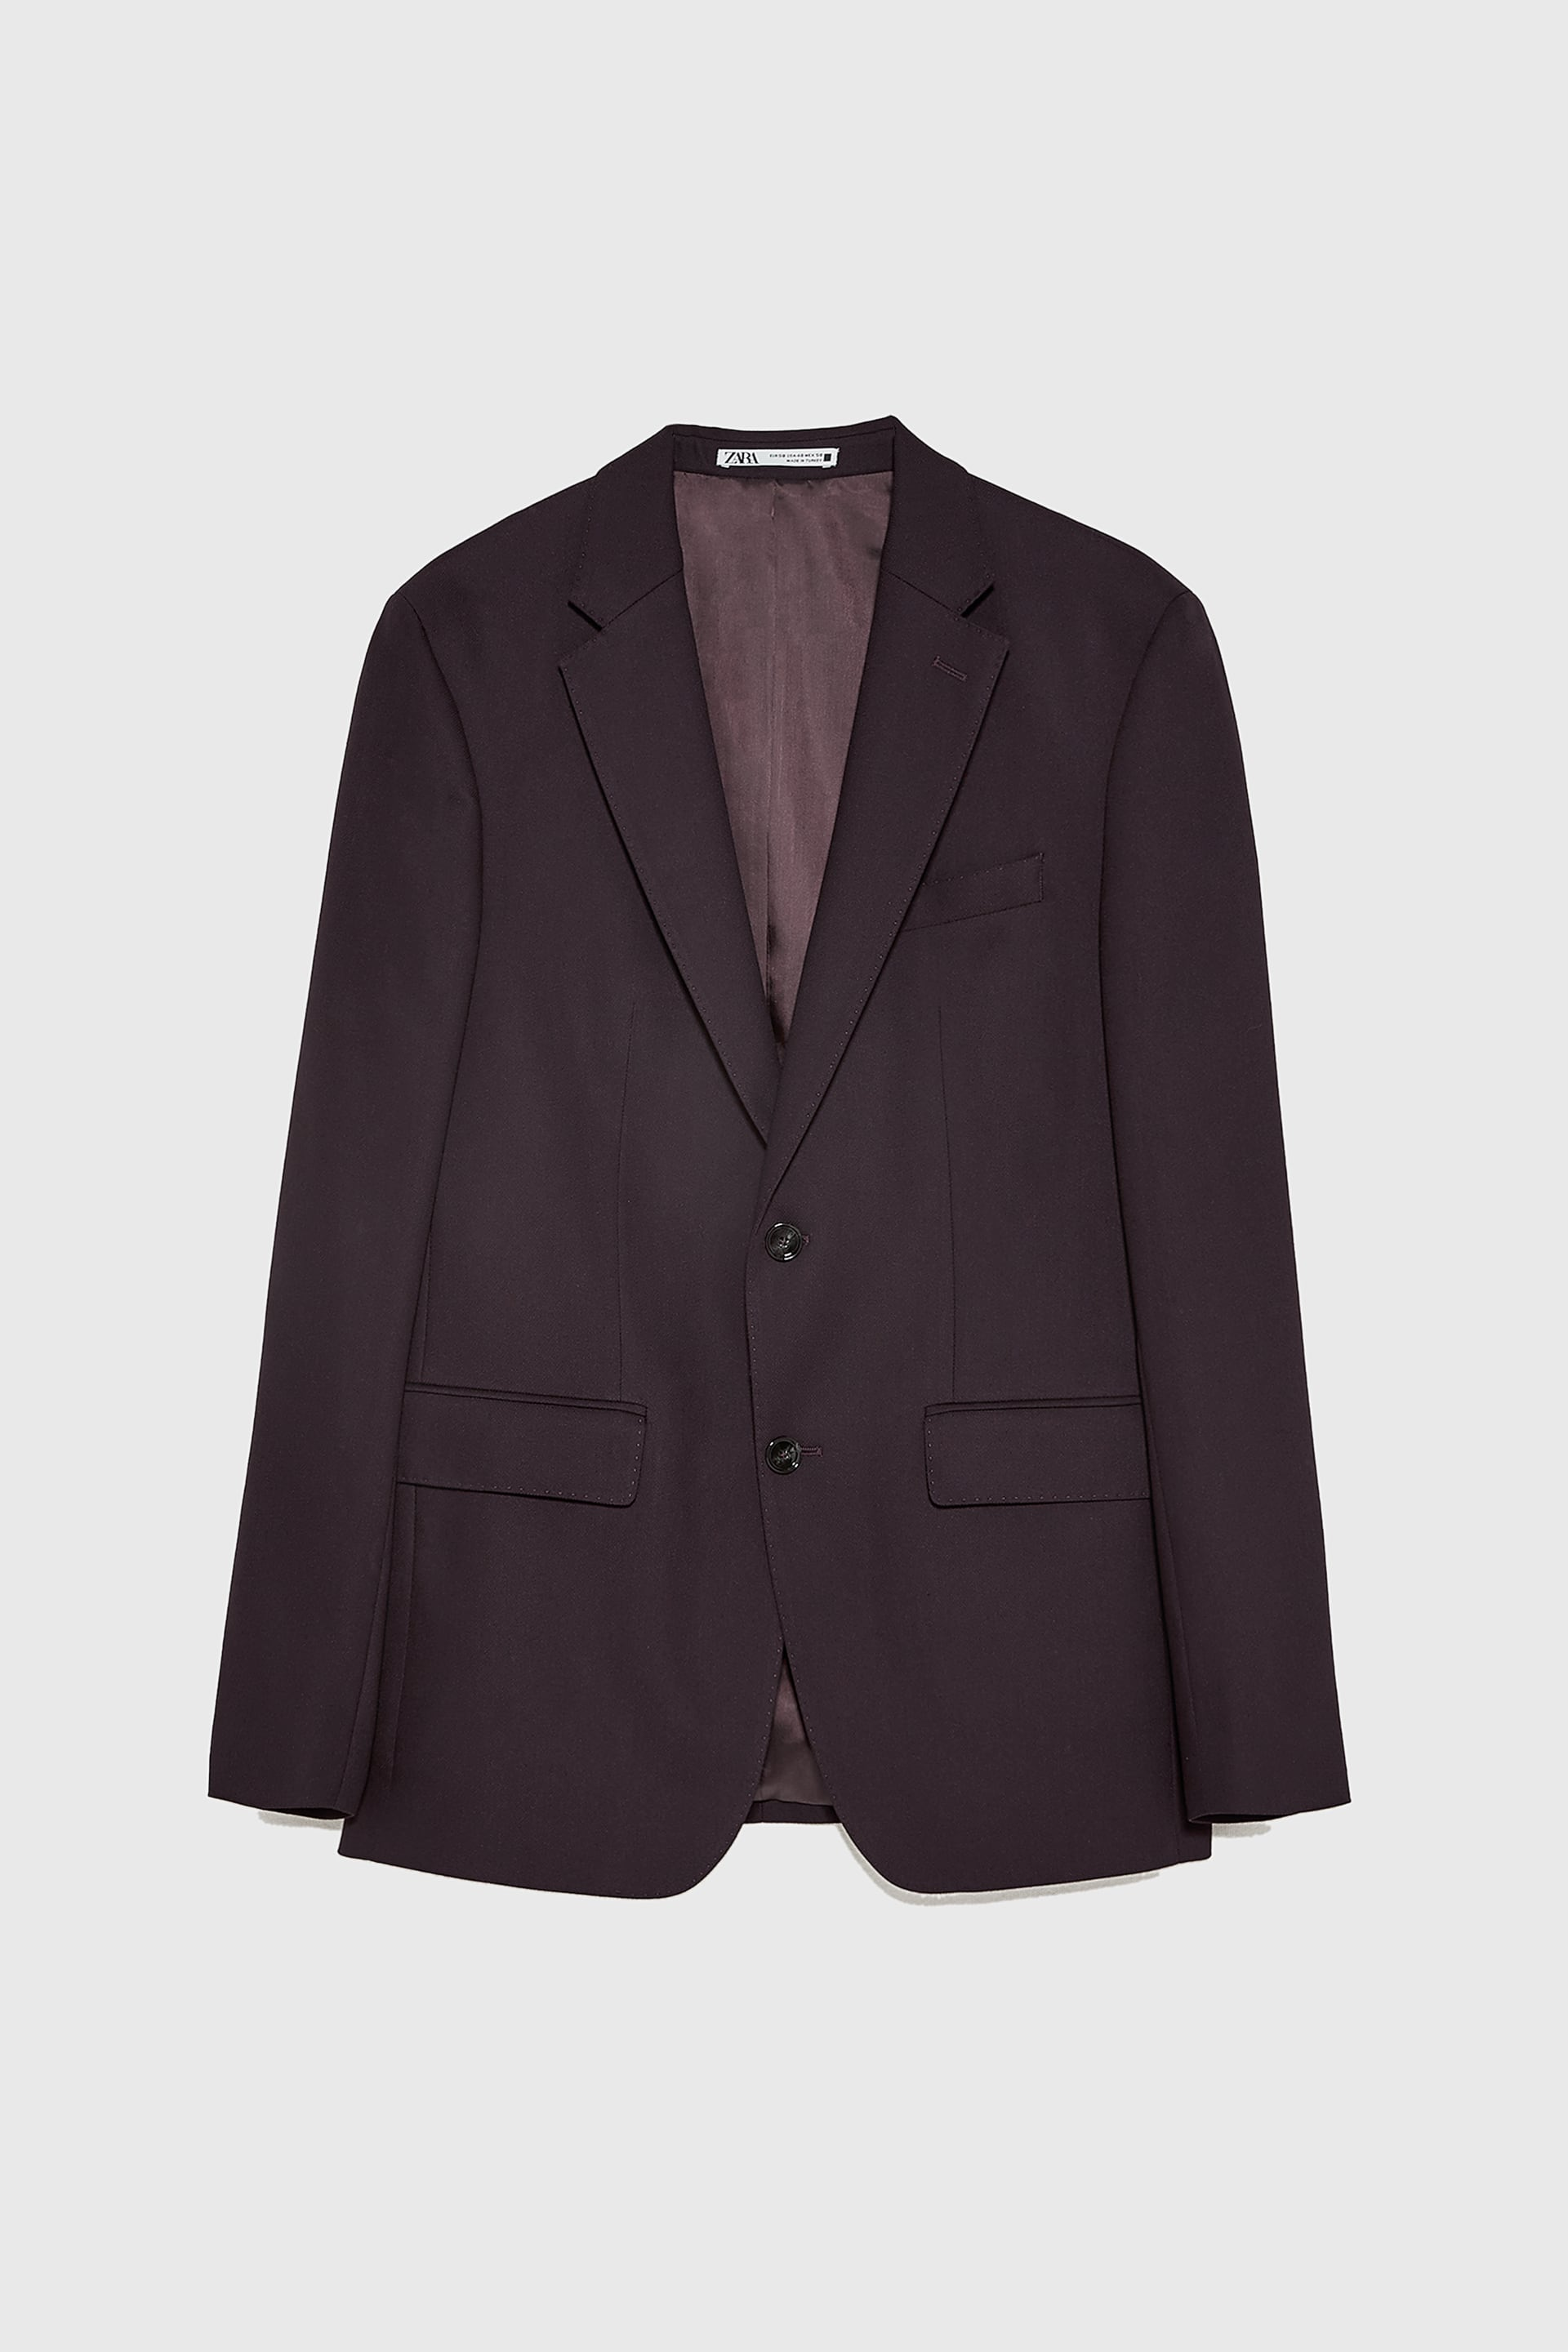 BIRD'S-EYE TEXTURED BLAZER